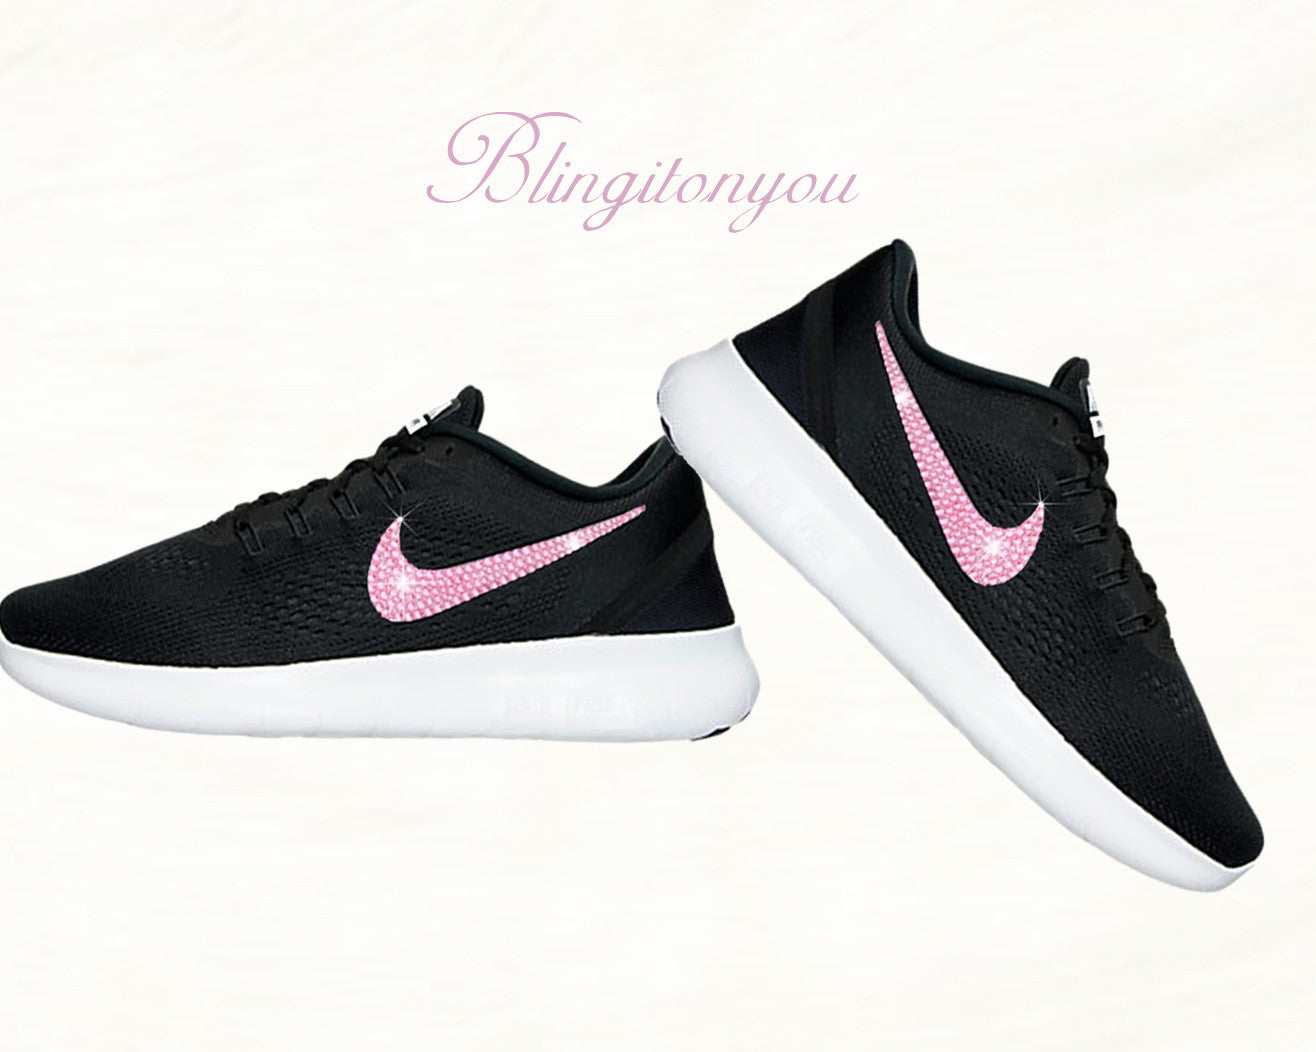 50c27f9b8374e Black and White Nike Women s Free RN Running Shoes Blinged with Pink  Swarovski Crystals